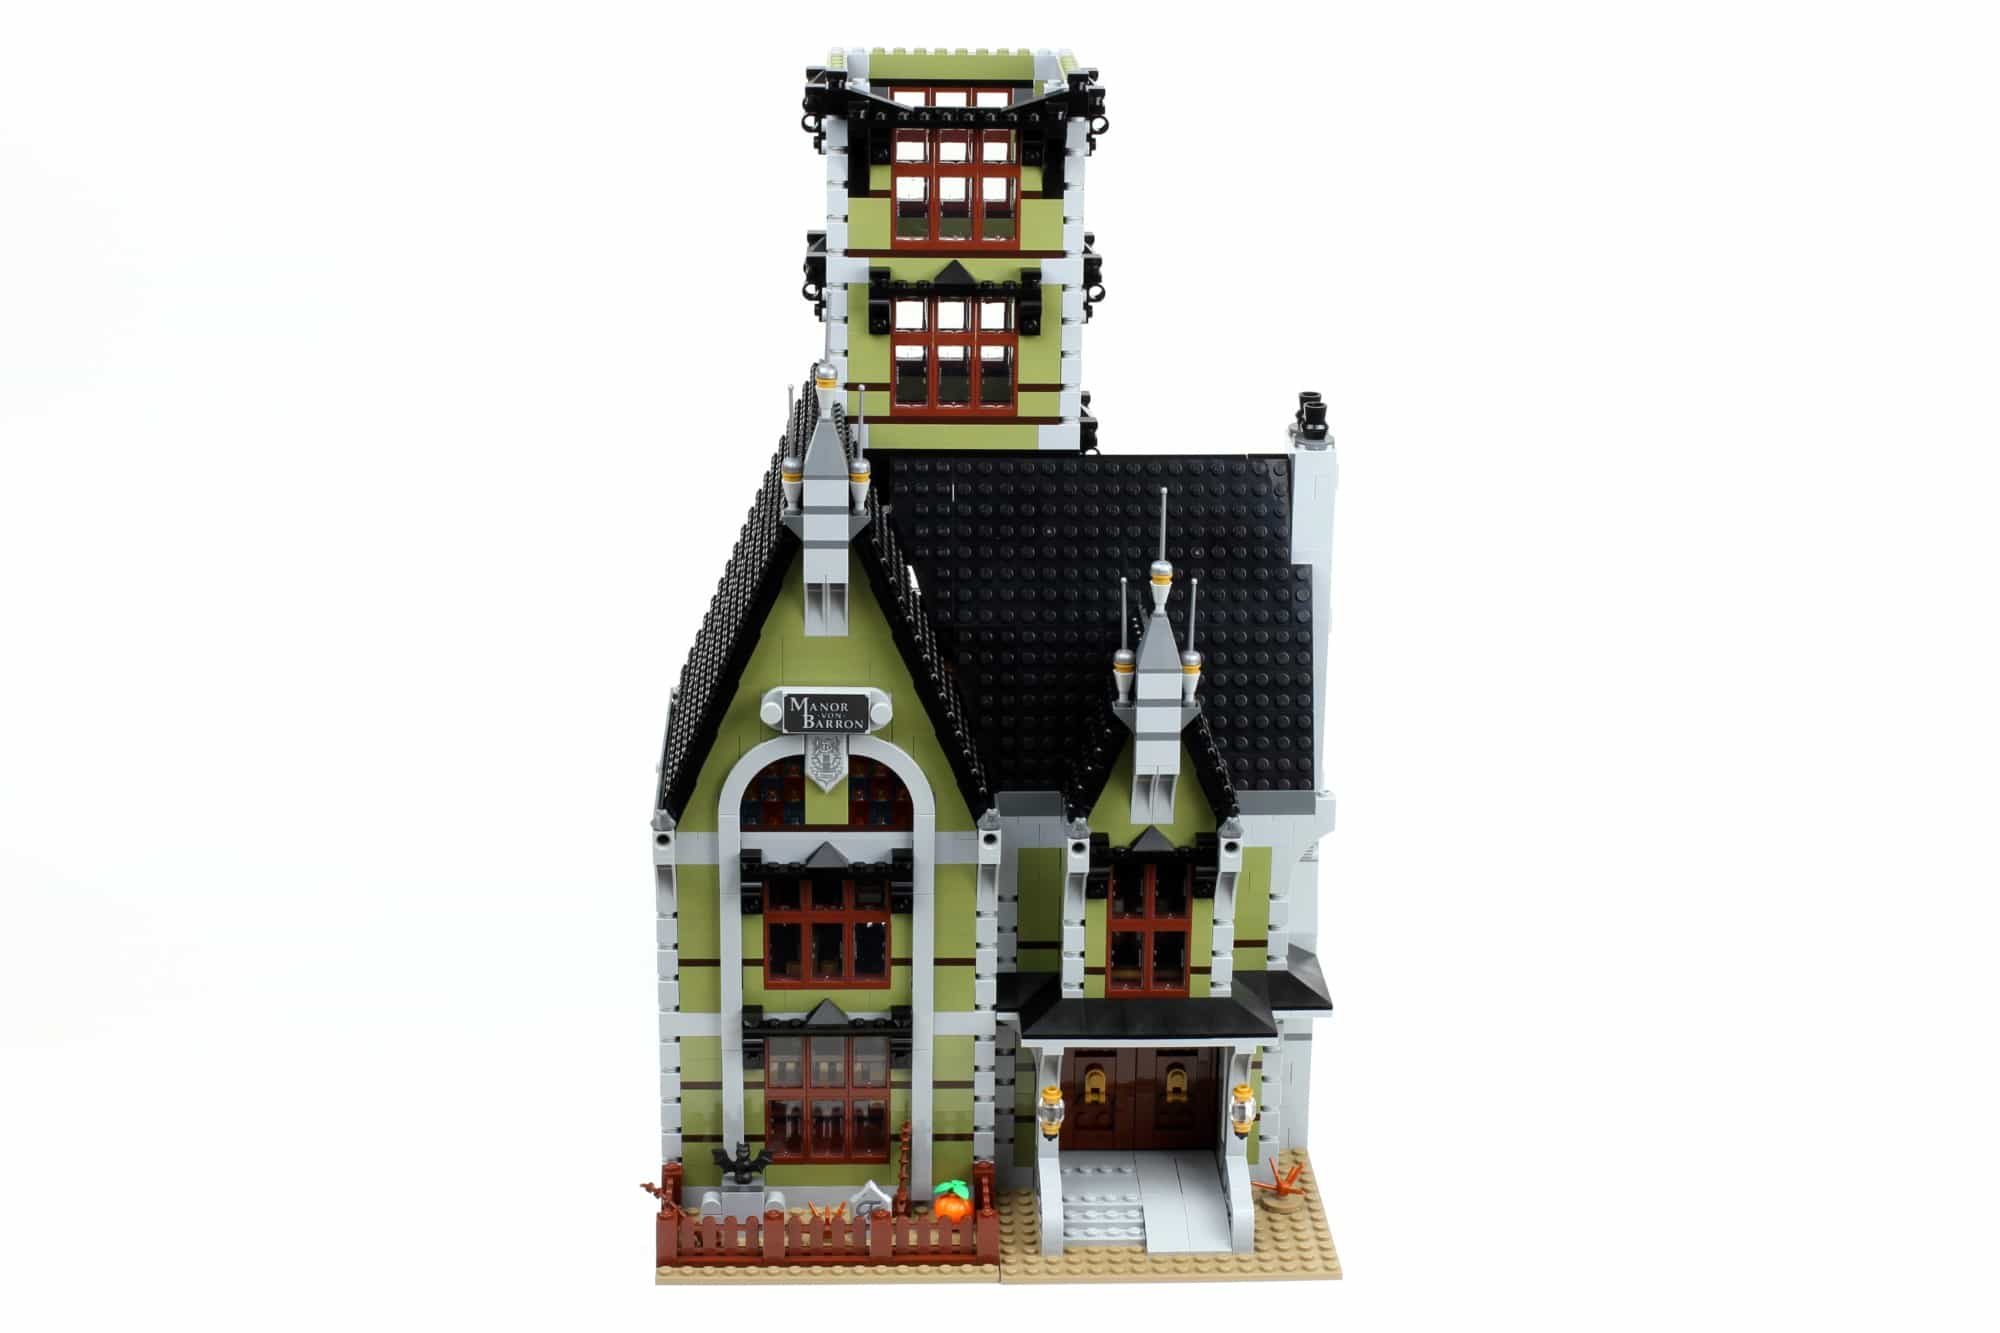 LEGO Fairground Collection 10273 Haunted House Aufbau Schritt 15 2